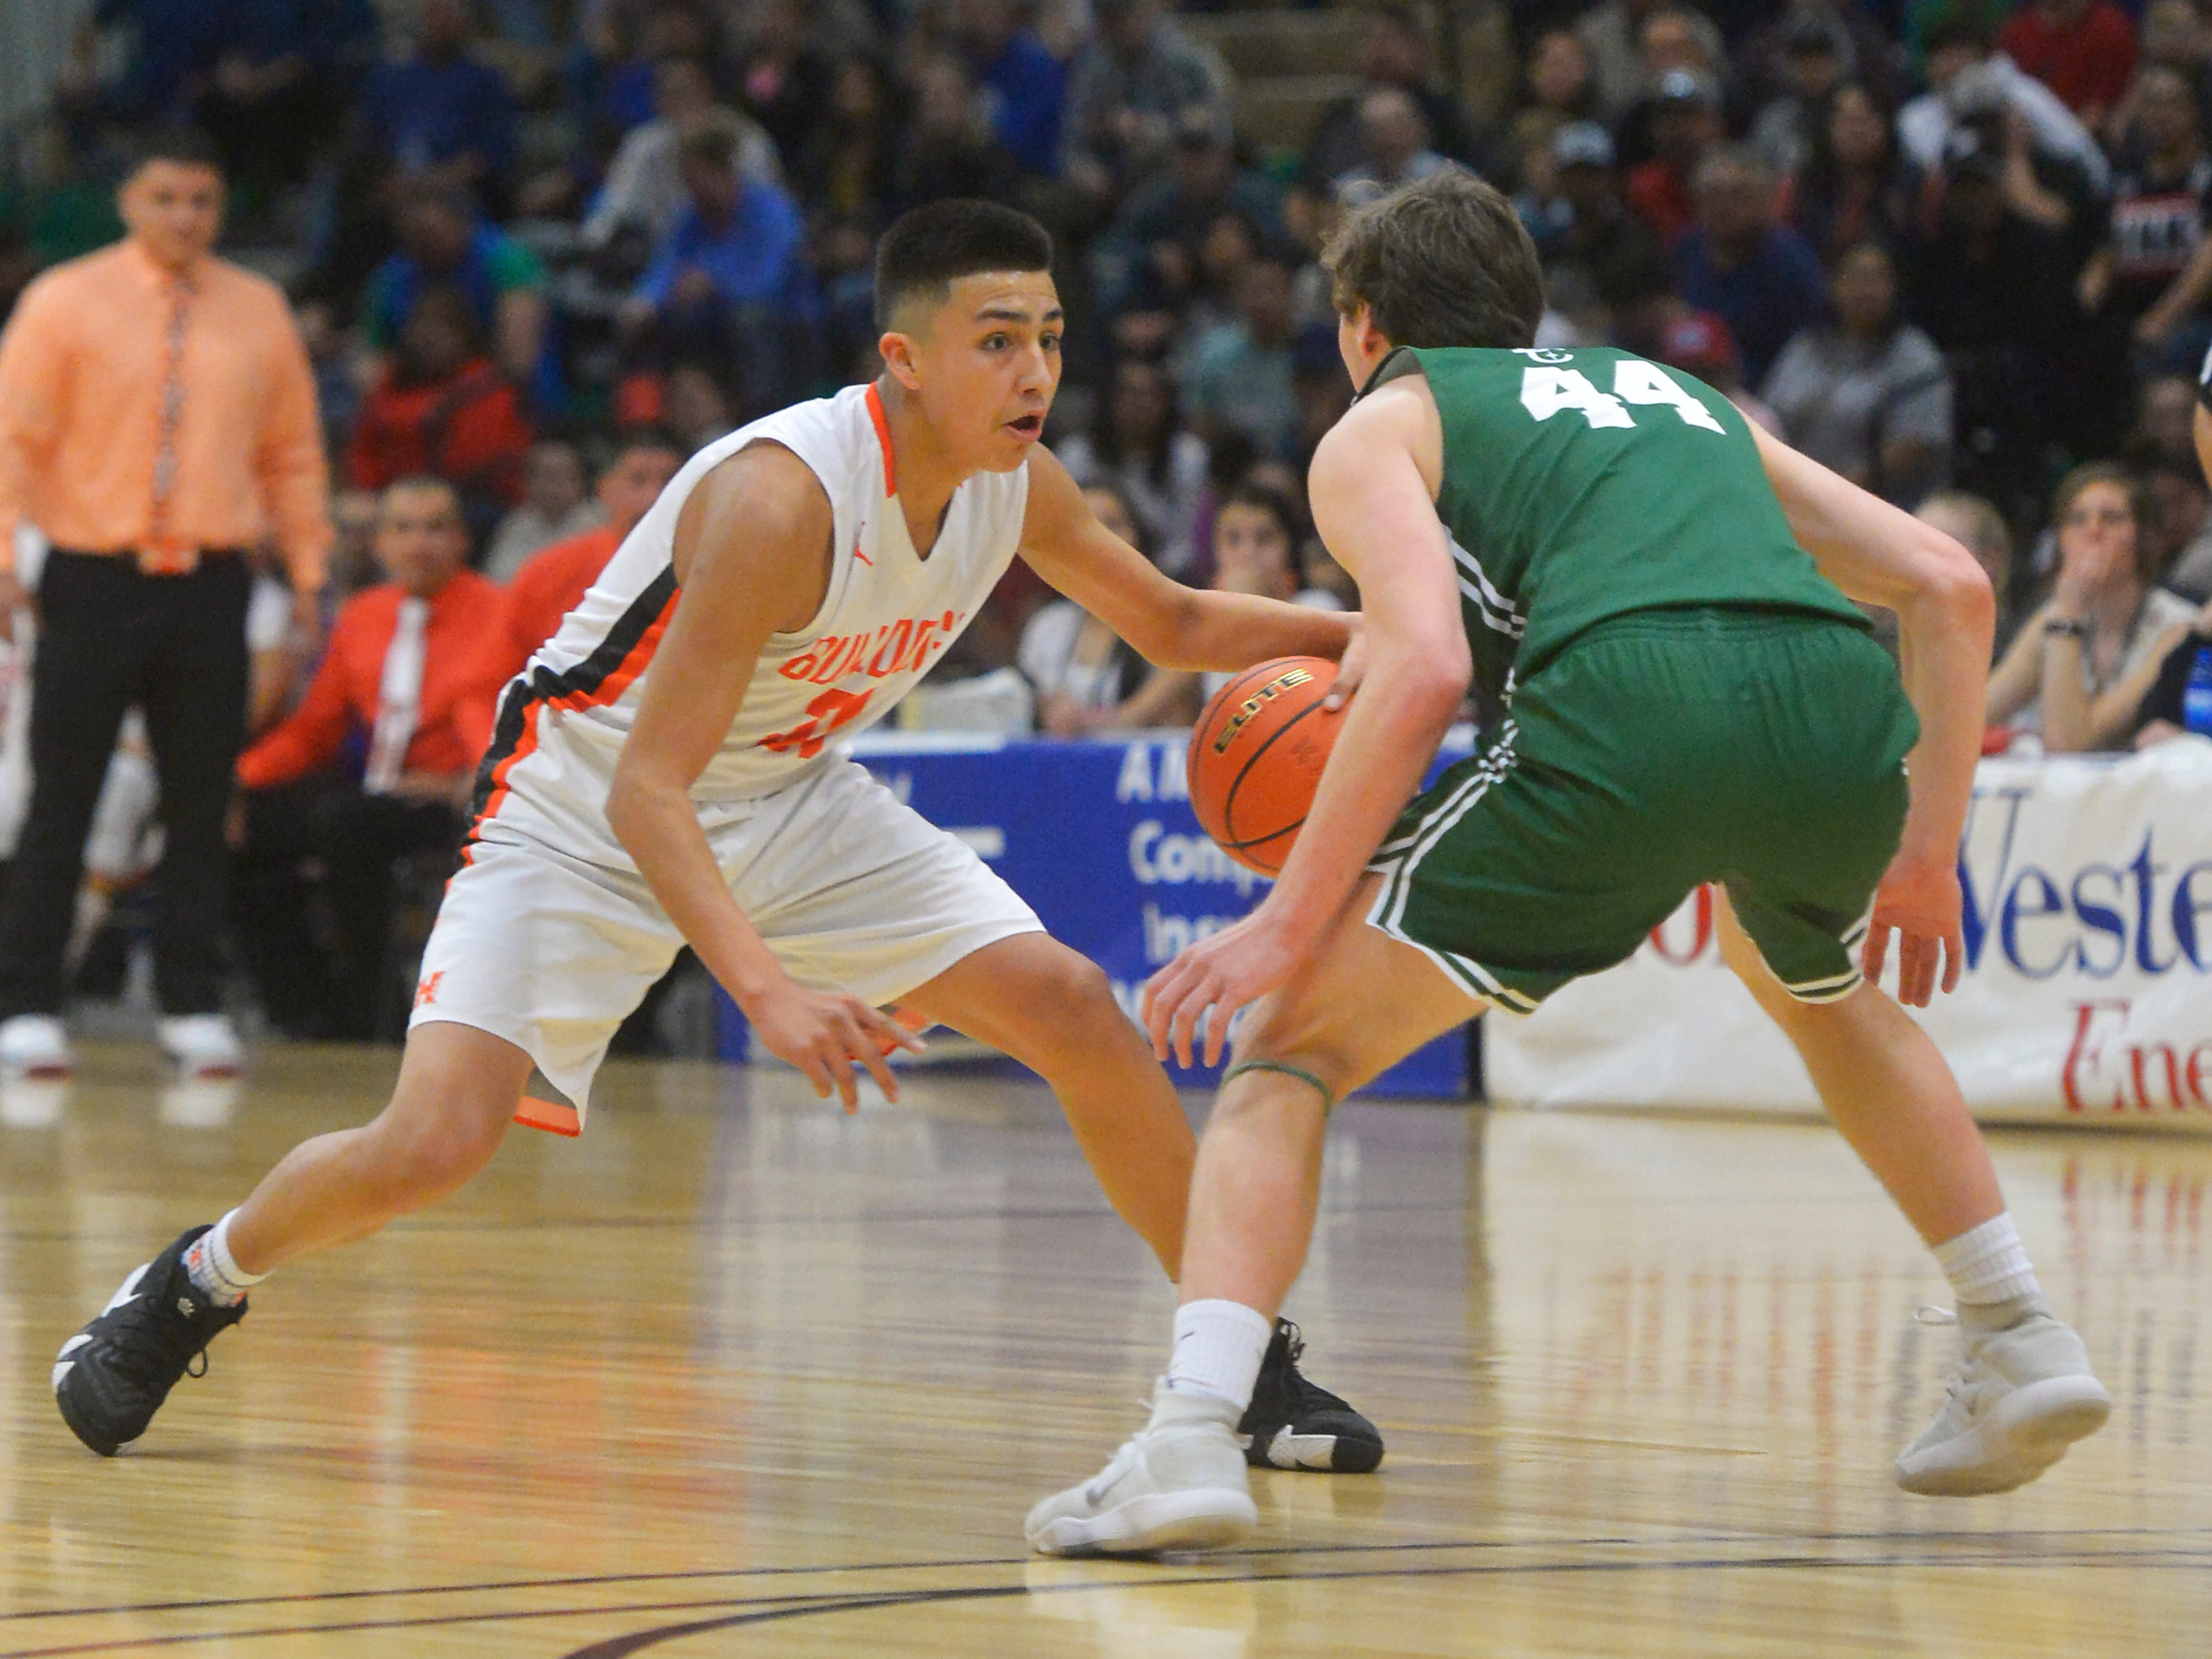 Hardin's Peyton Goodluck attempts to dribble passed Billings Central's Joe Byorth during the title game of the State Class A Basketball Tournament in the Four Seasons Arena, Saturday.